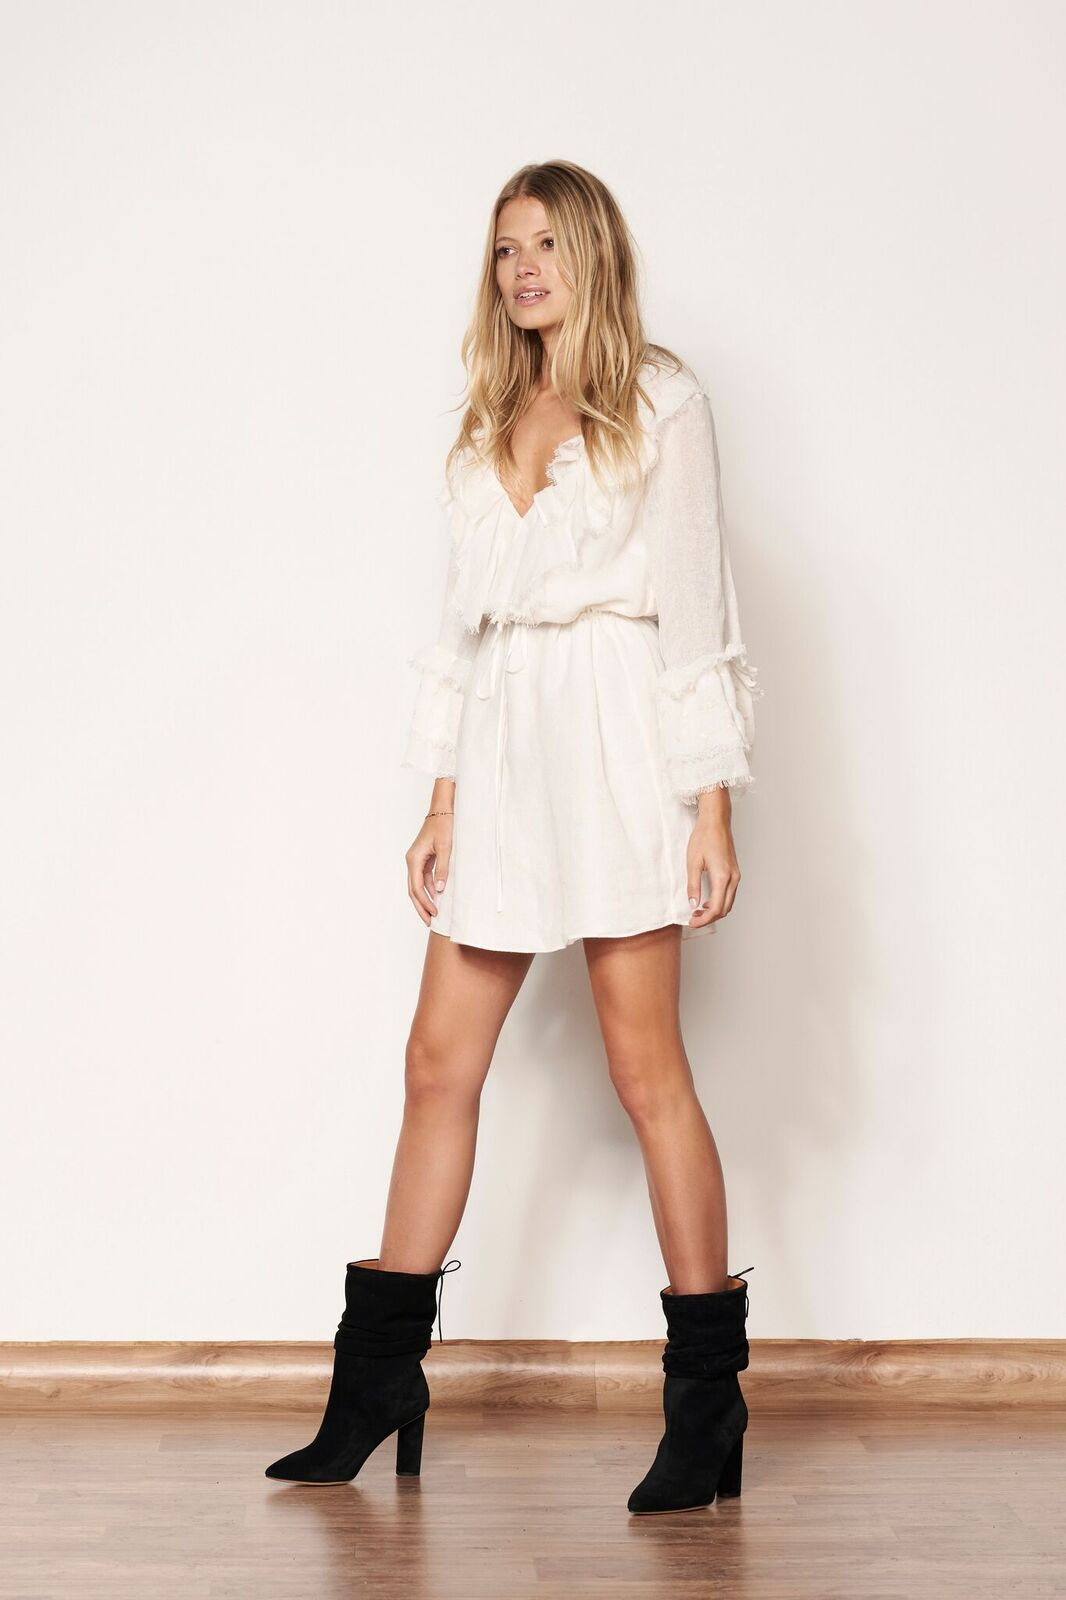 Stevie May Empyreal Mini Dress - Stevie May, The East Order, Talulah, Pasduchas, Everly Collective